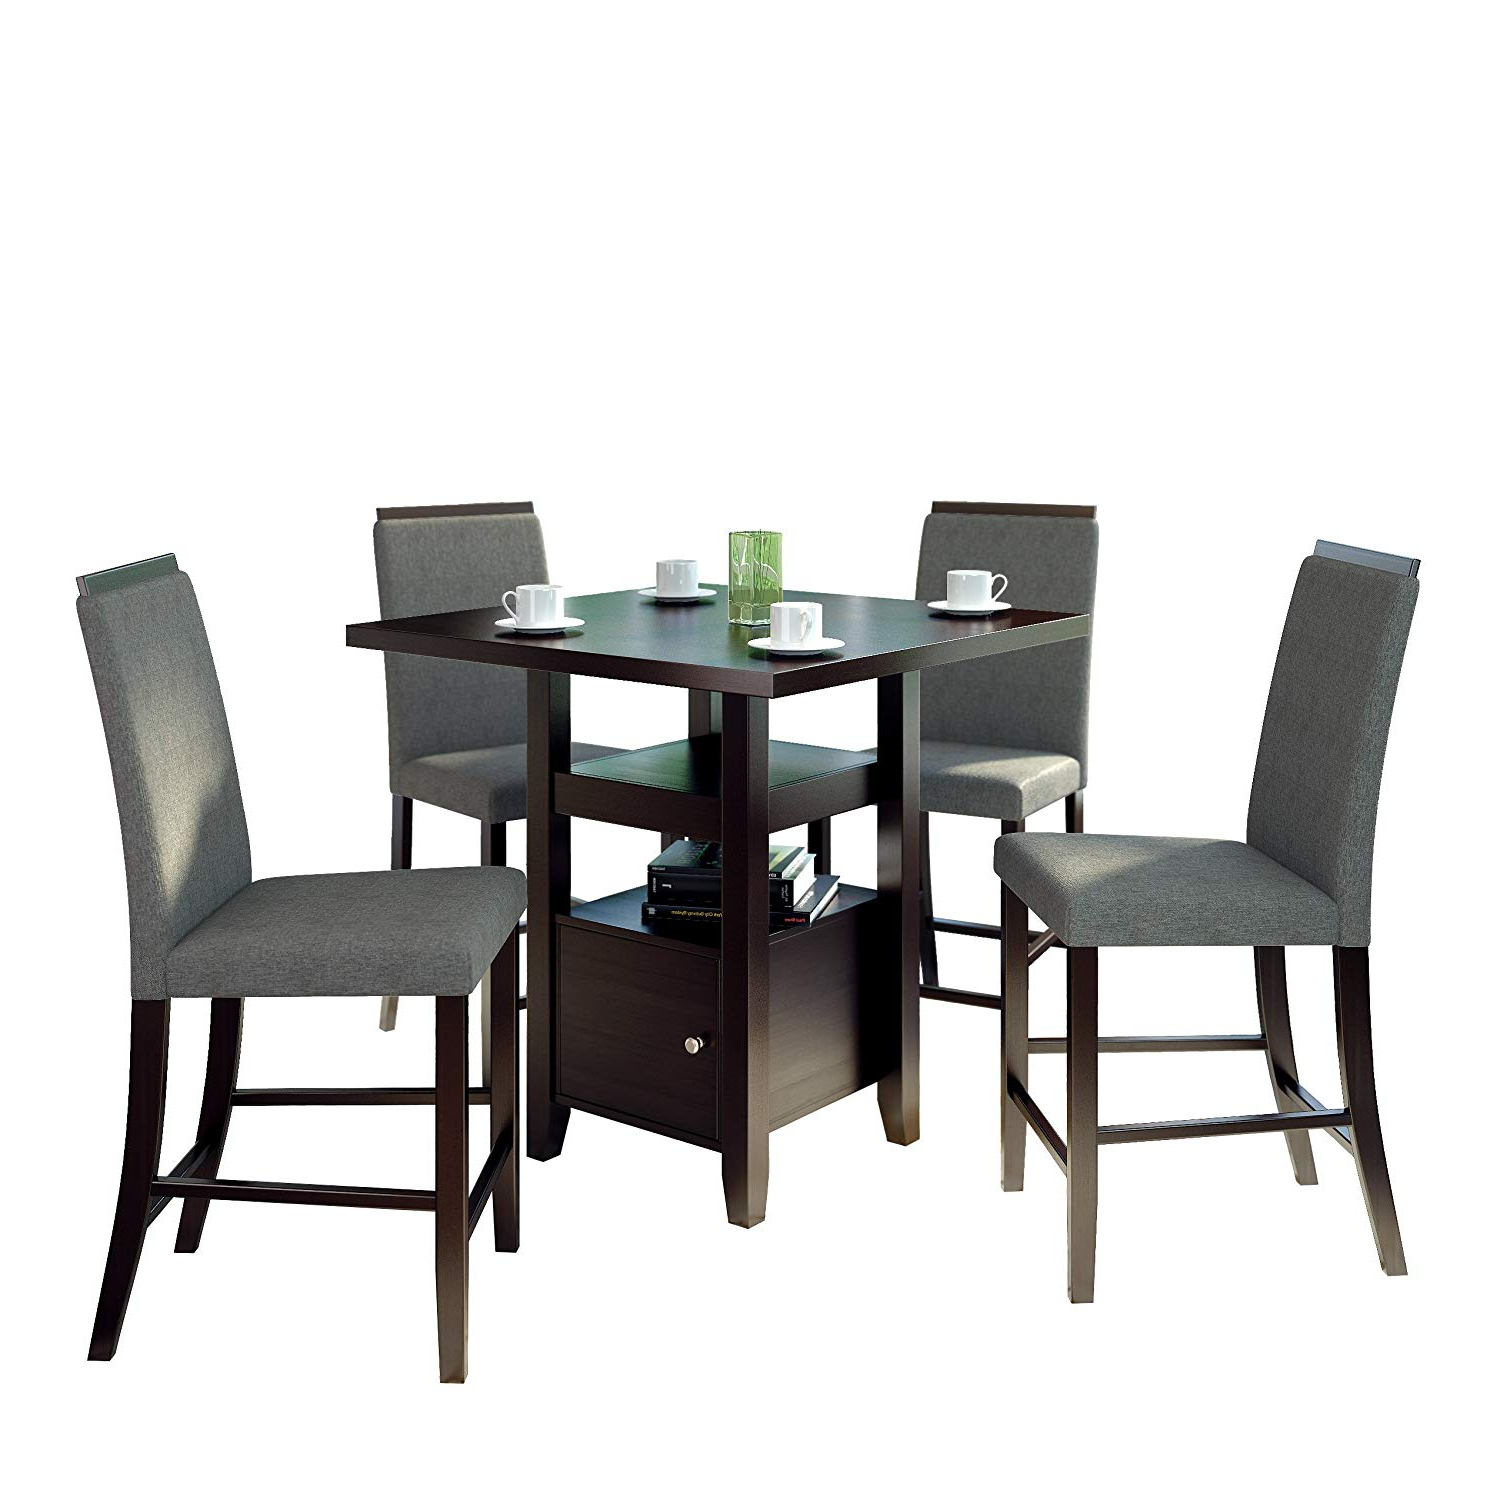 Amazon – Corliving 5 Piece Bistro Counter Height Rich Pertaining To Latest Bistro Transitional 4 Seating Square Dining Tables (View 2 of 24)